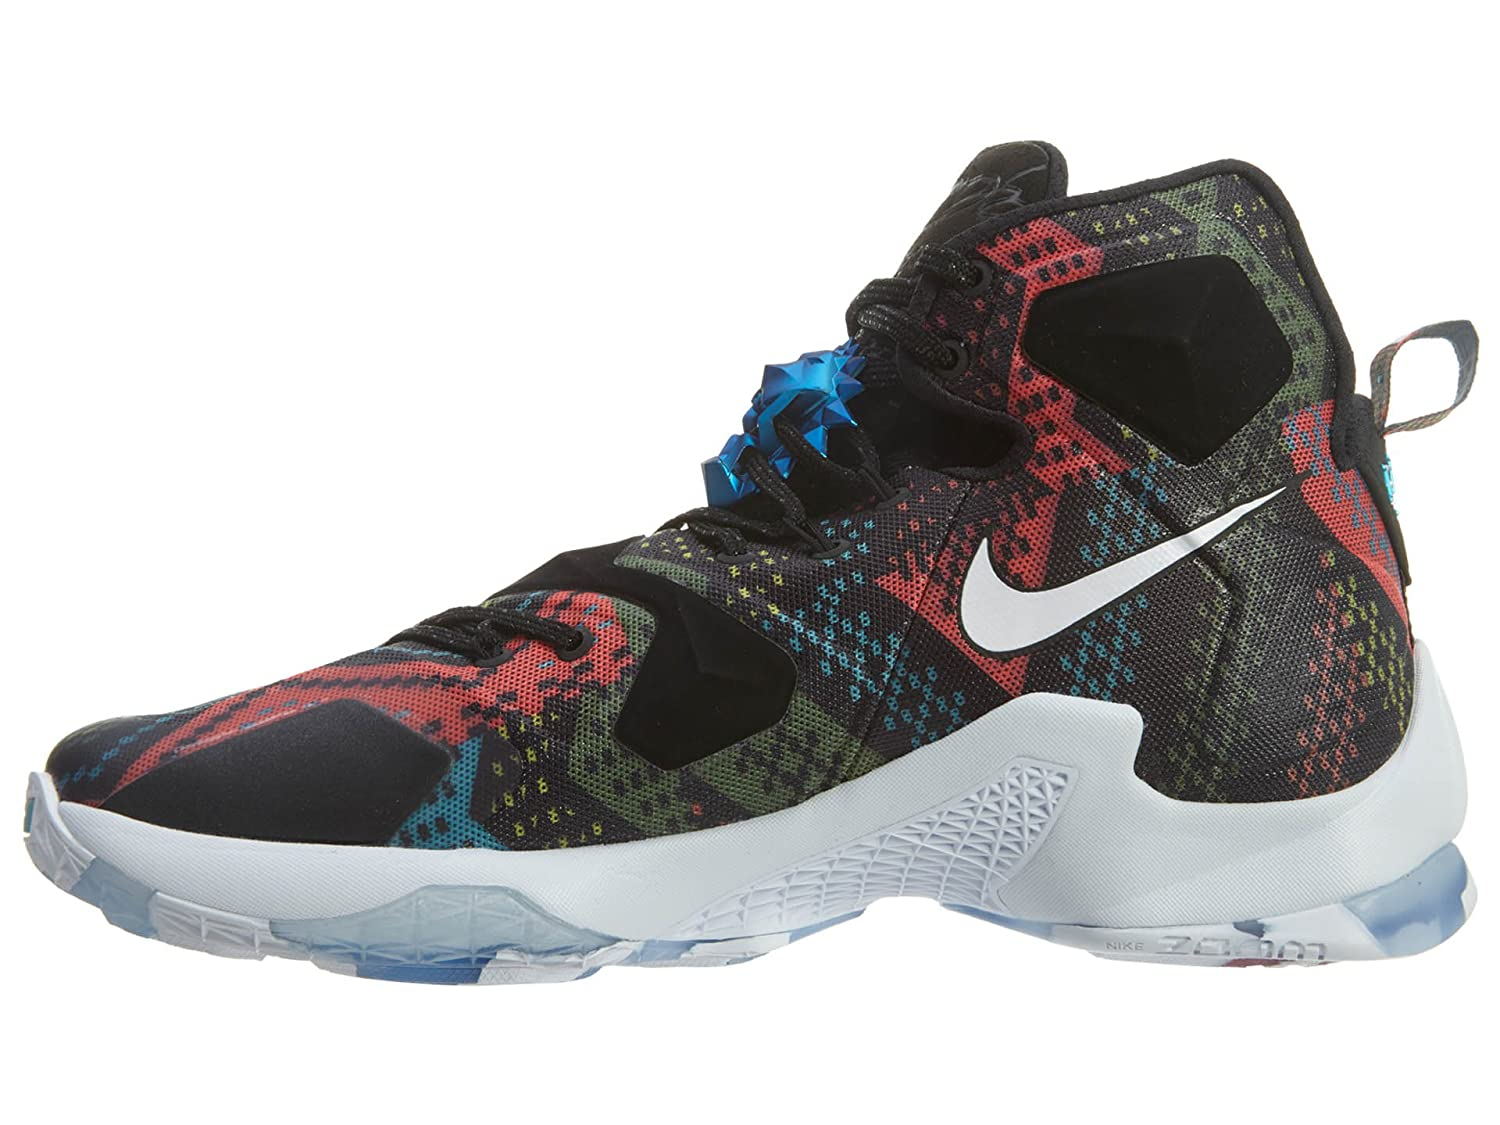 71c08b1ecbc14 ... shoes 91221 3d3ce  ireland amazon nike mens lebron 13 bhm 2016 828377  910 basketball 27e74 0e7fa